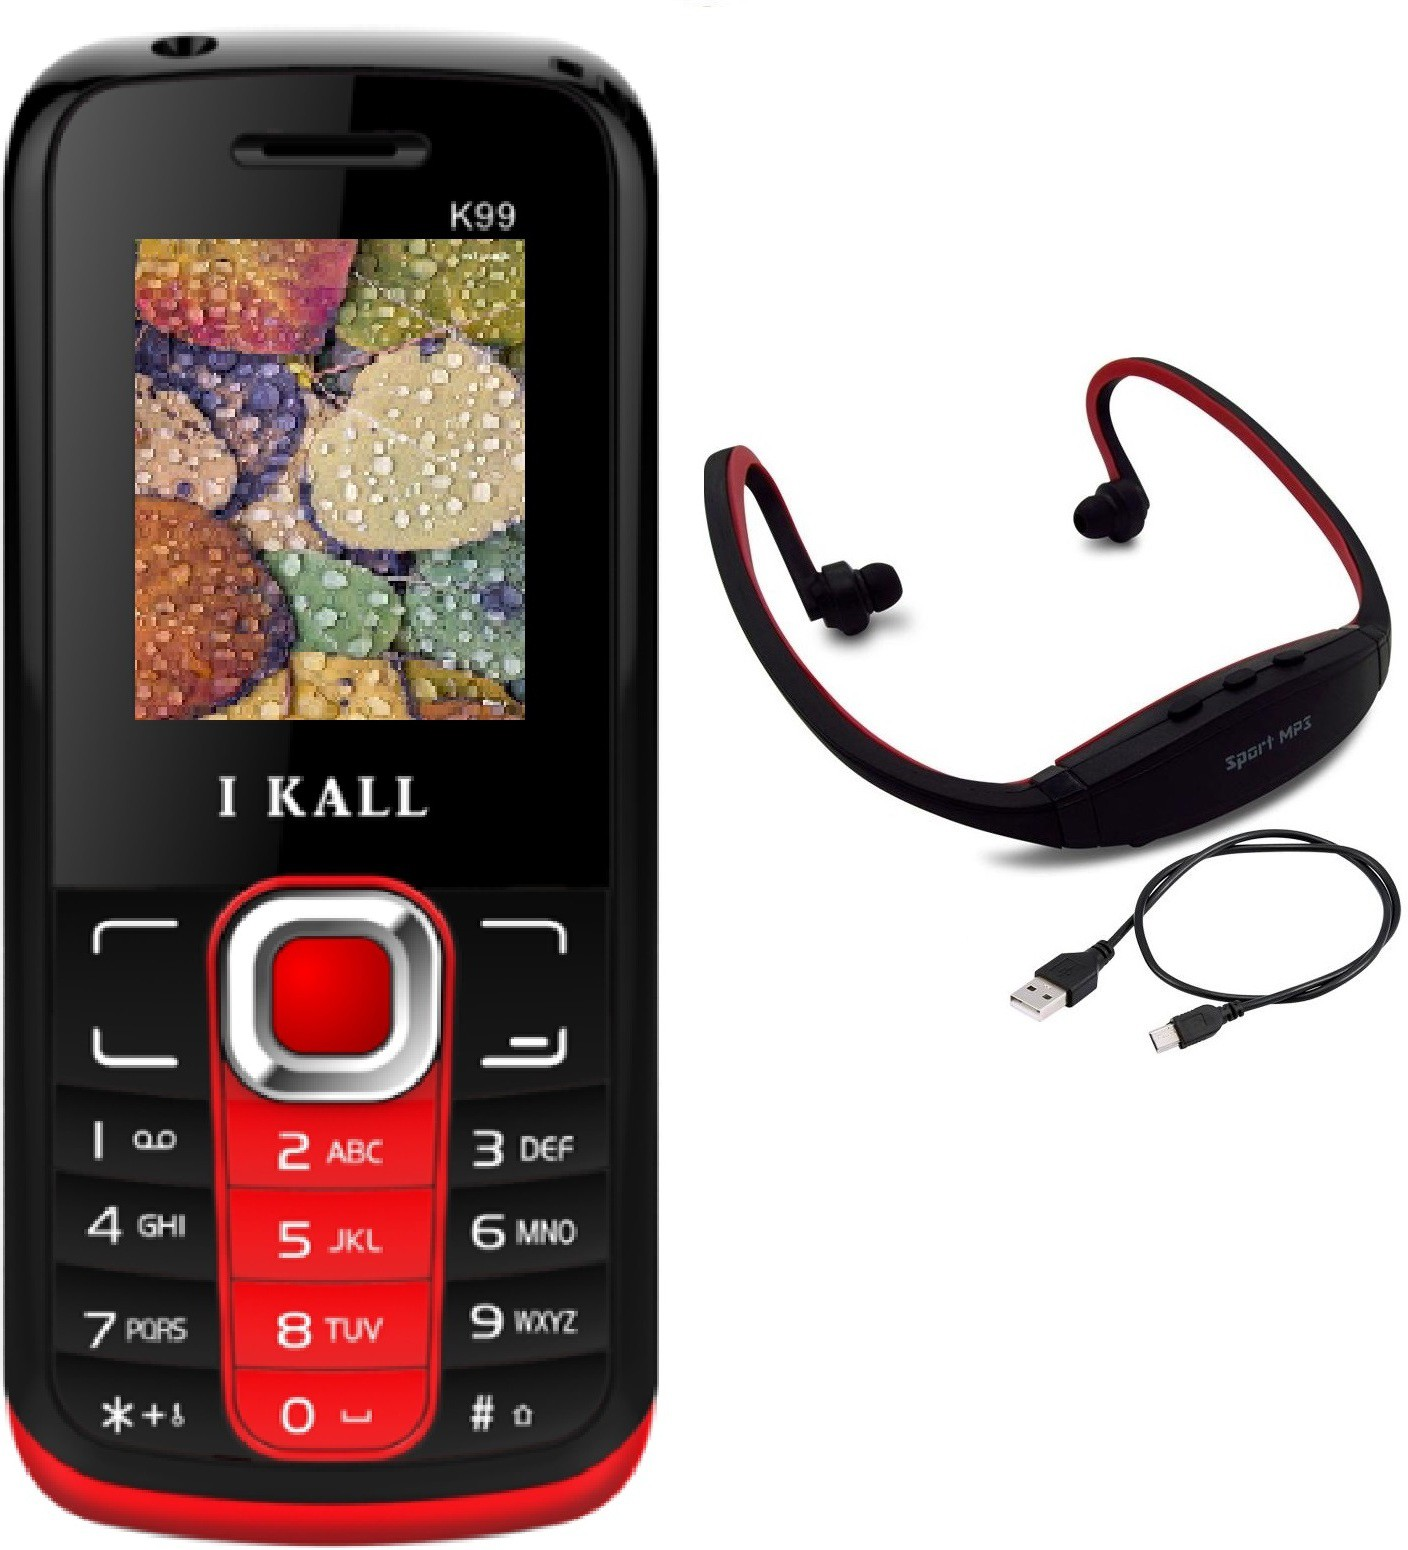 I Kall K99 with MP3/FM Player Neckband(Red & Black)